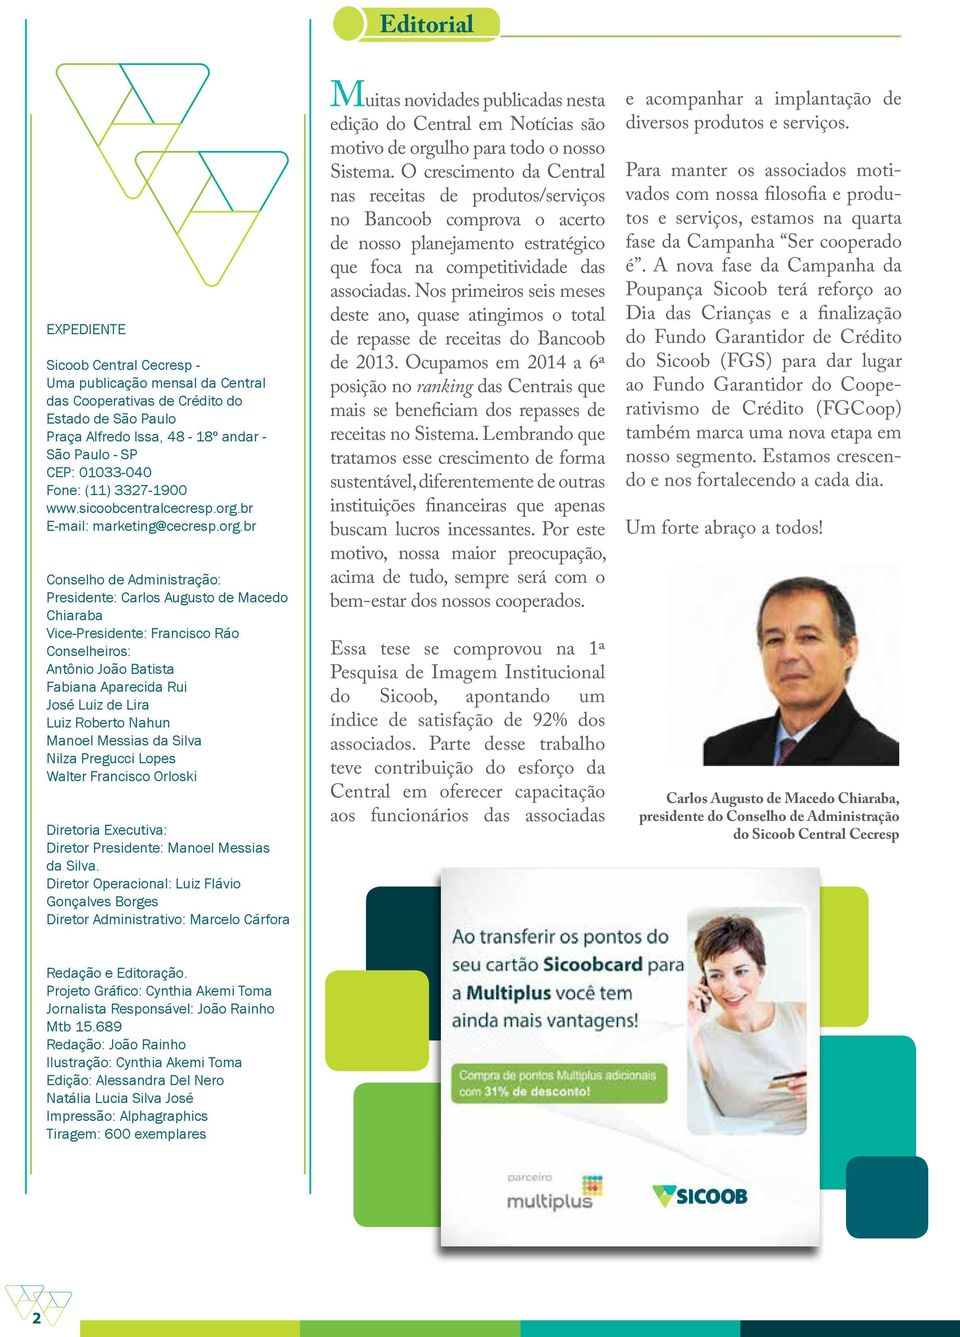 br E-mail: marketing@cecresp.org.